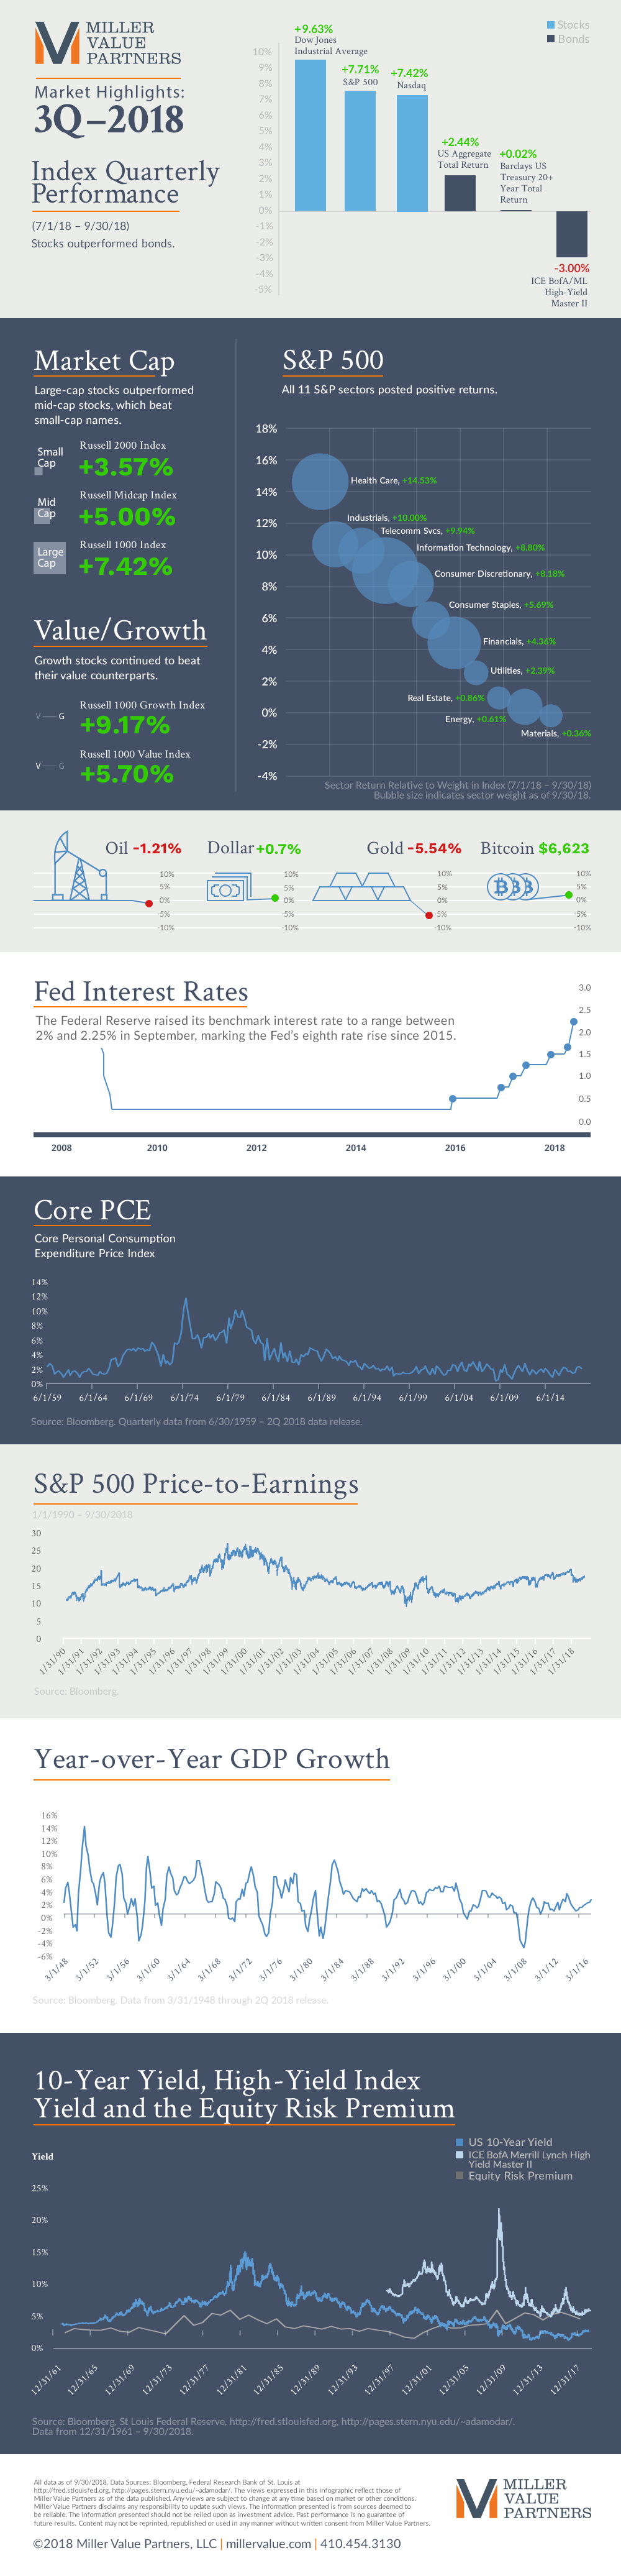 What Happened this Quarter - Infographic